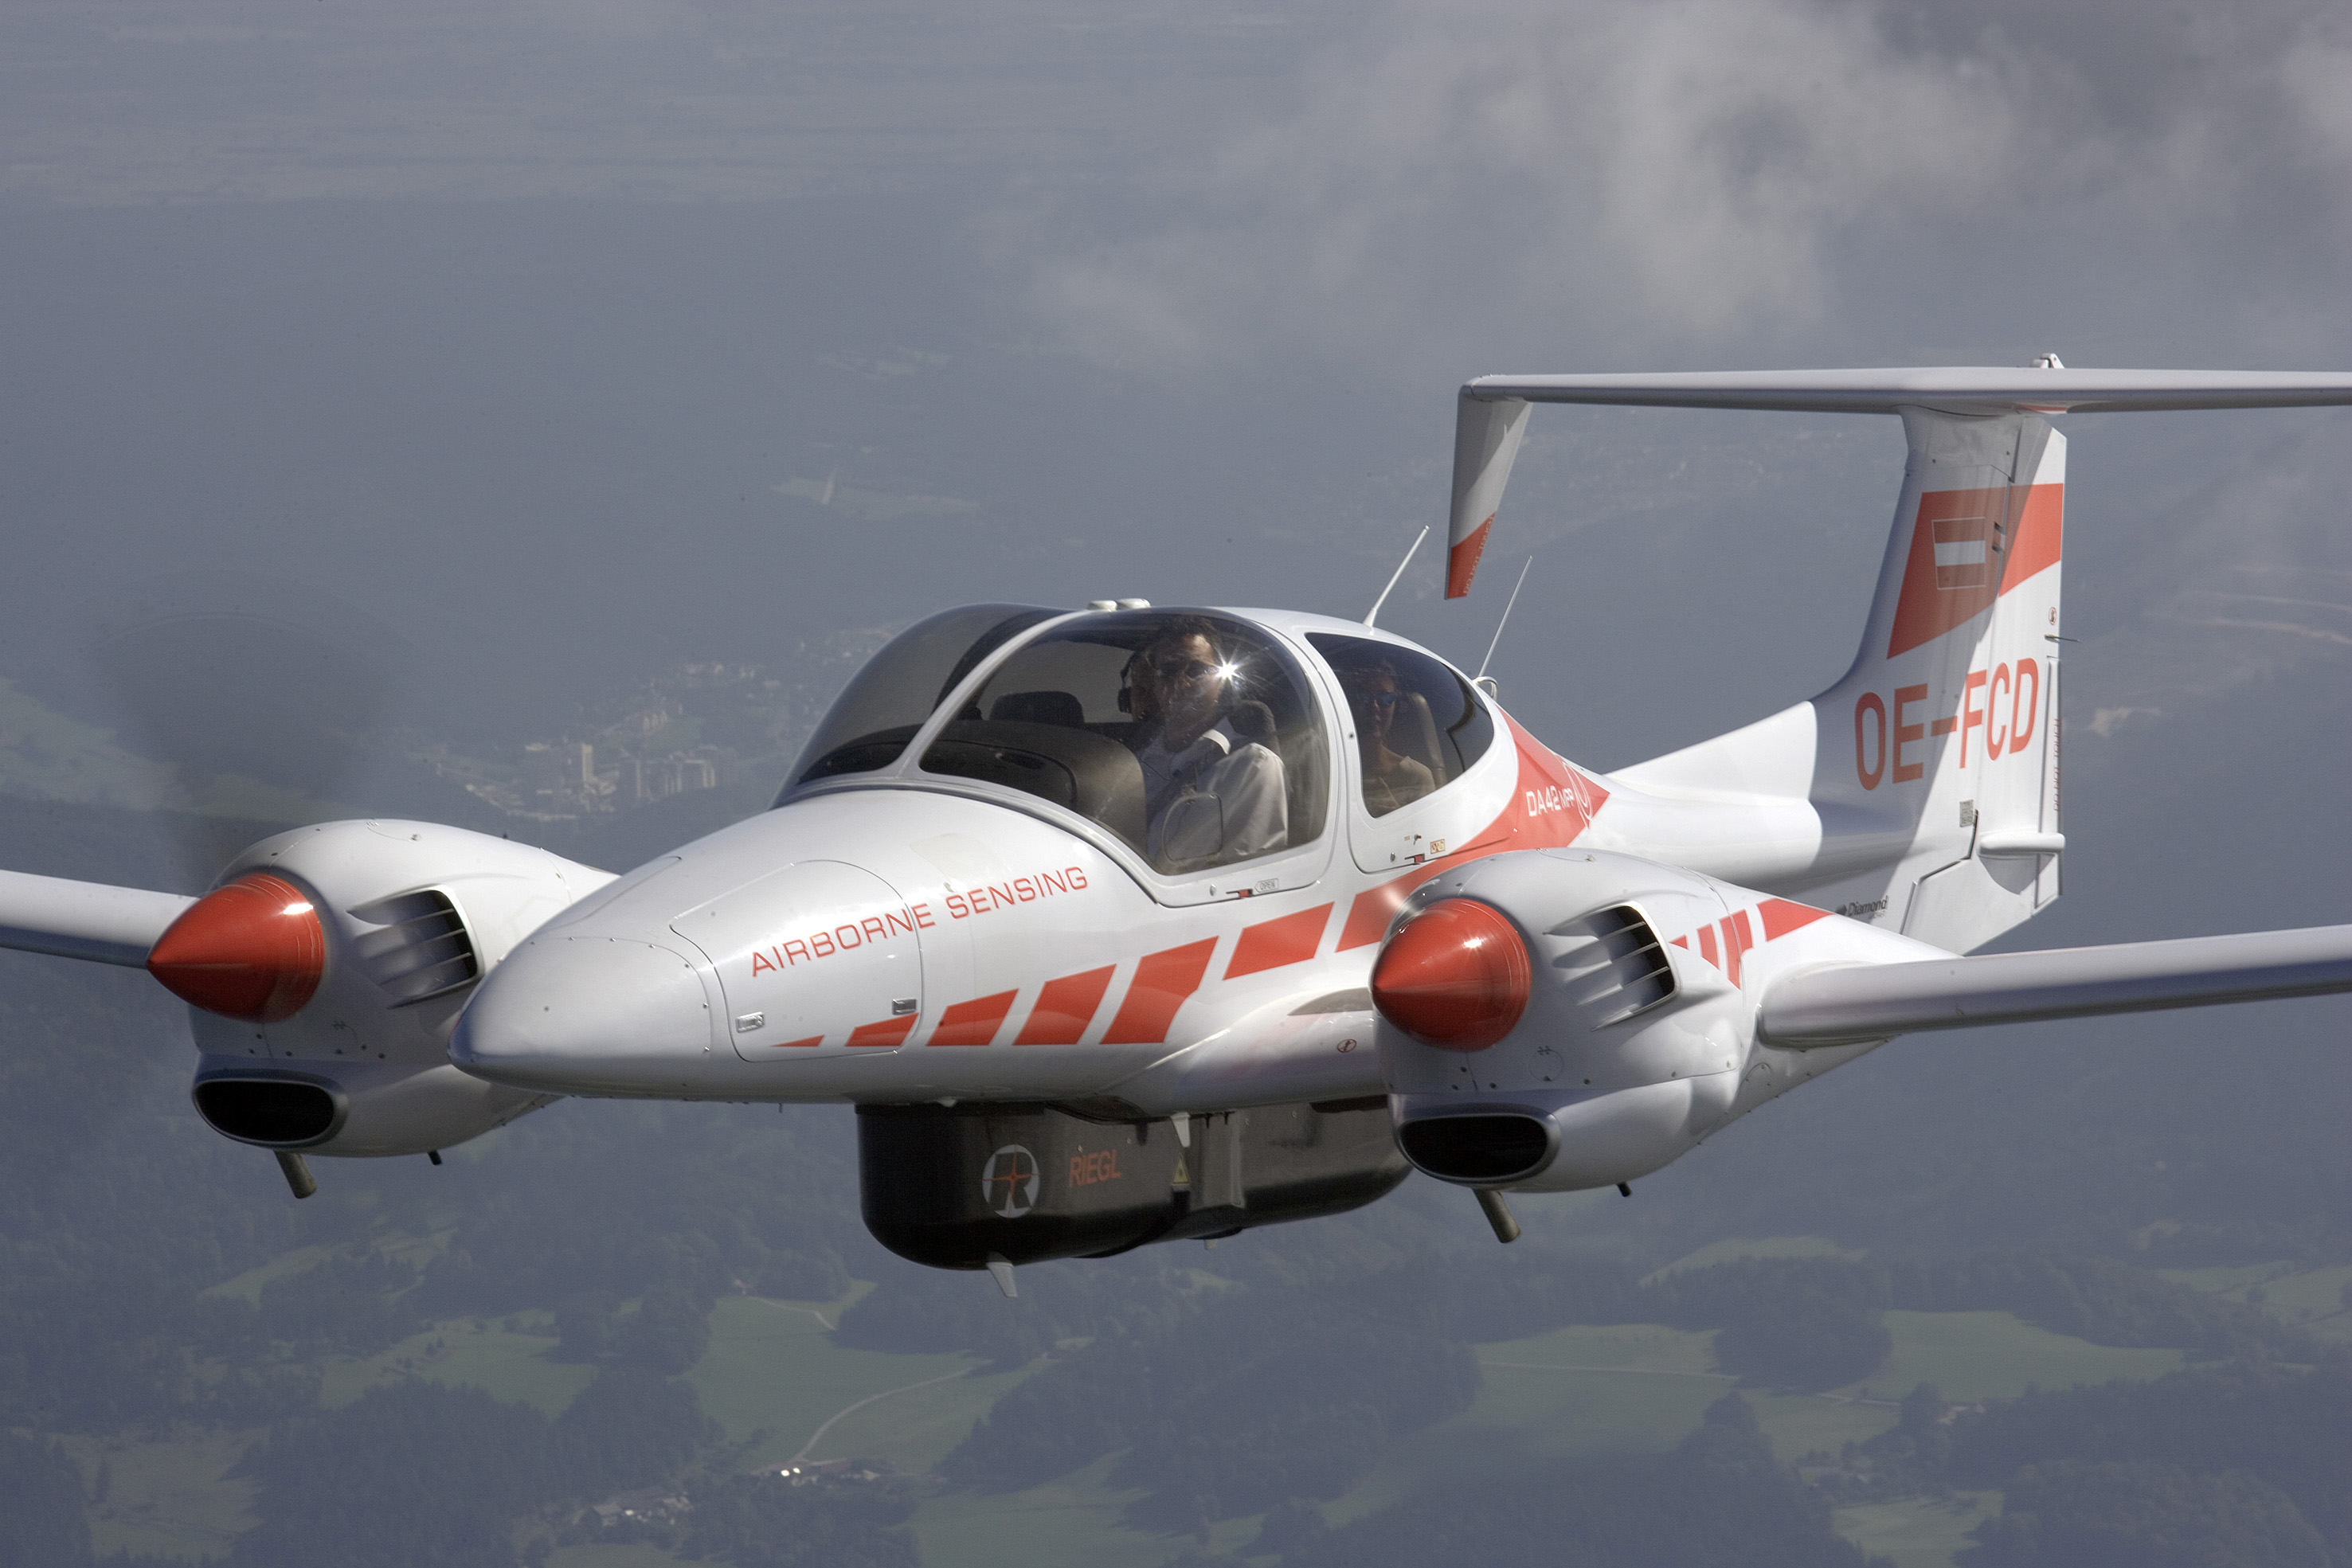 Diamond Airborne Sensing Obtained Certification For The